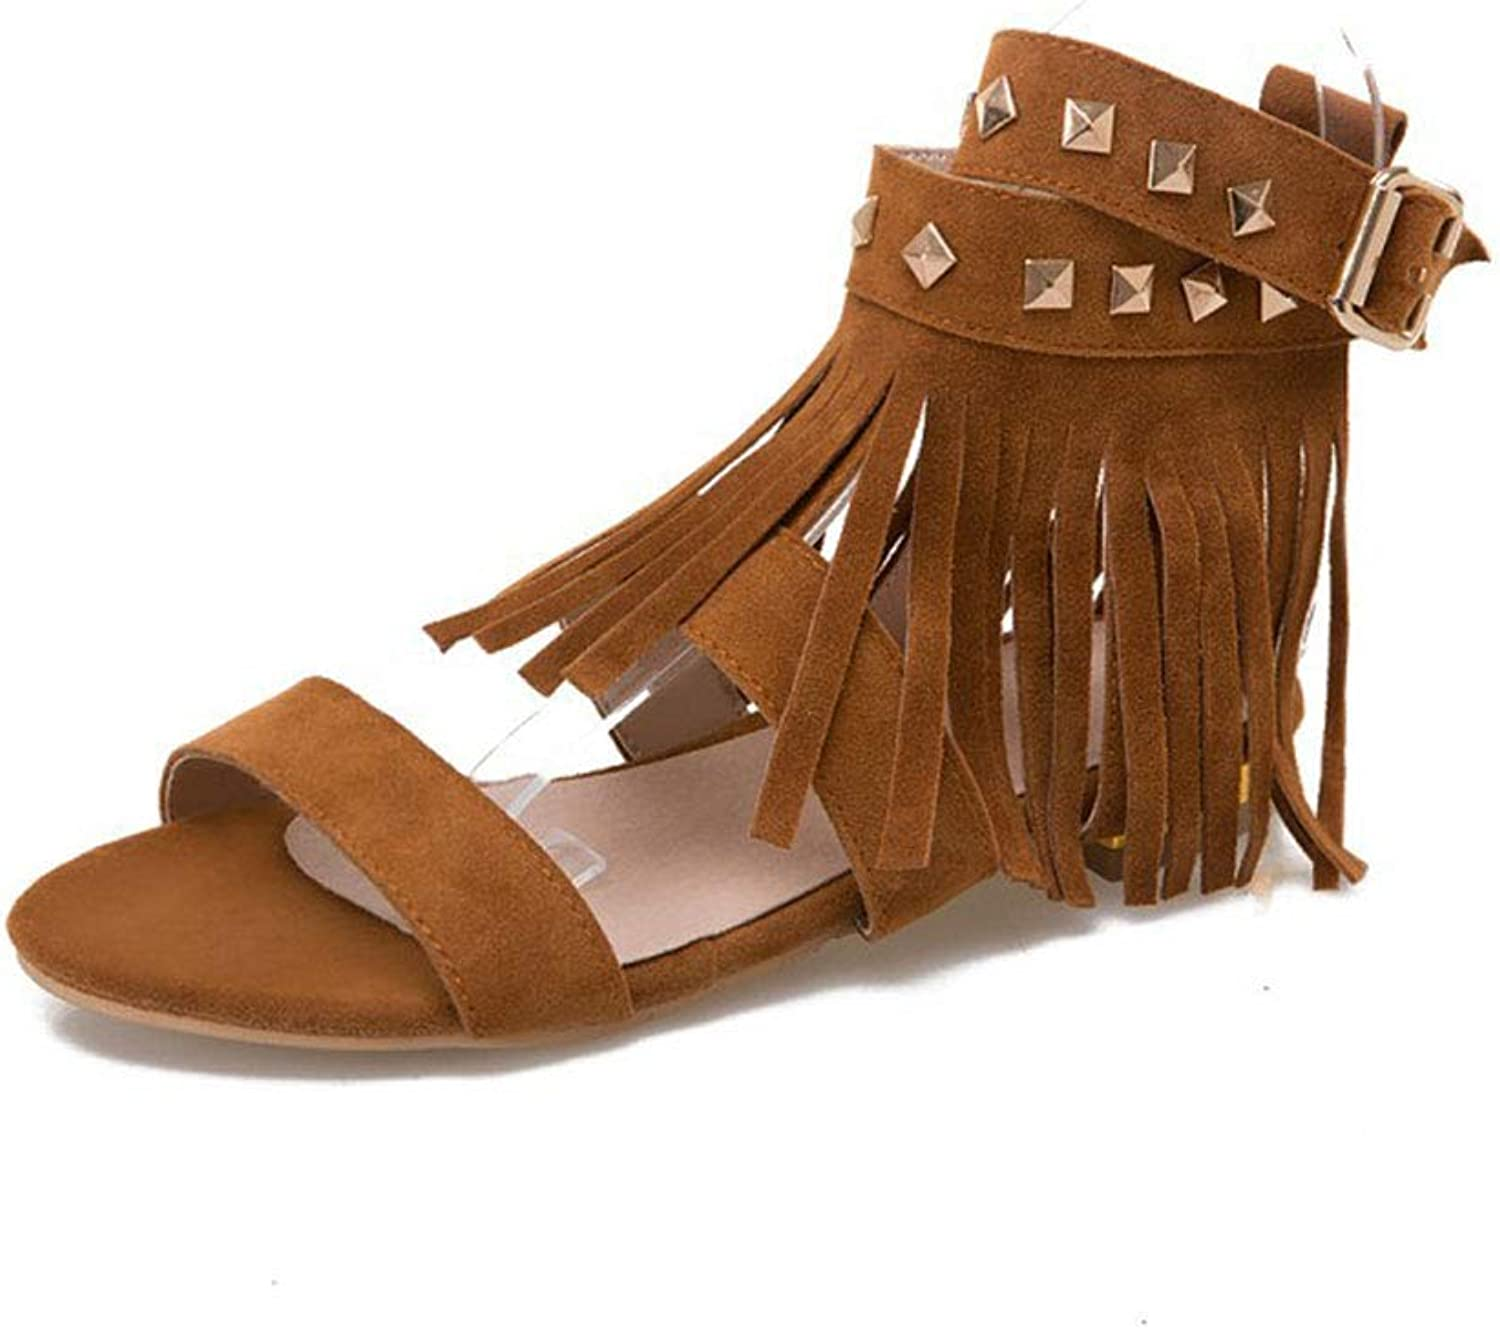 Women's Flat Sandals Gladiator Peep Toe Summer shoes with Tassel Flip Flops Casual shoes for Walking Vacation